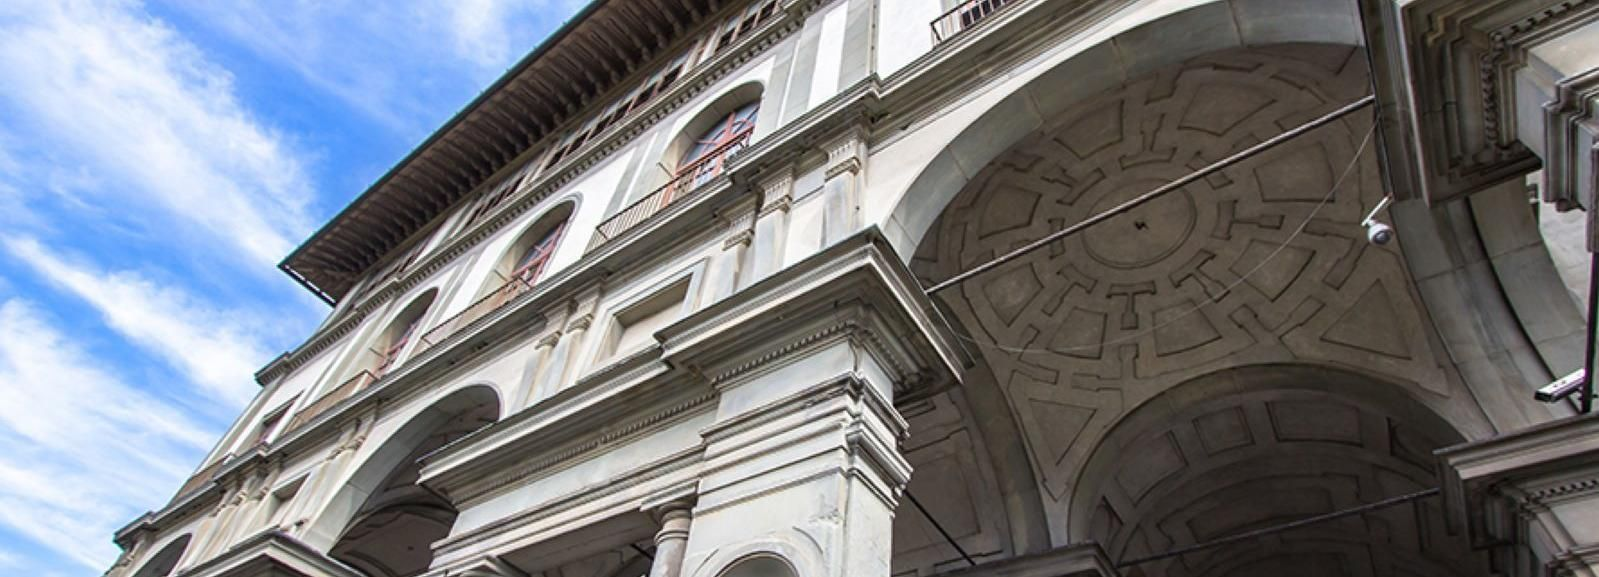 Florence: Private Uffizi Gallery Tour with a 5-Star Guide